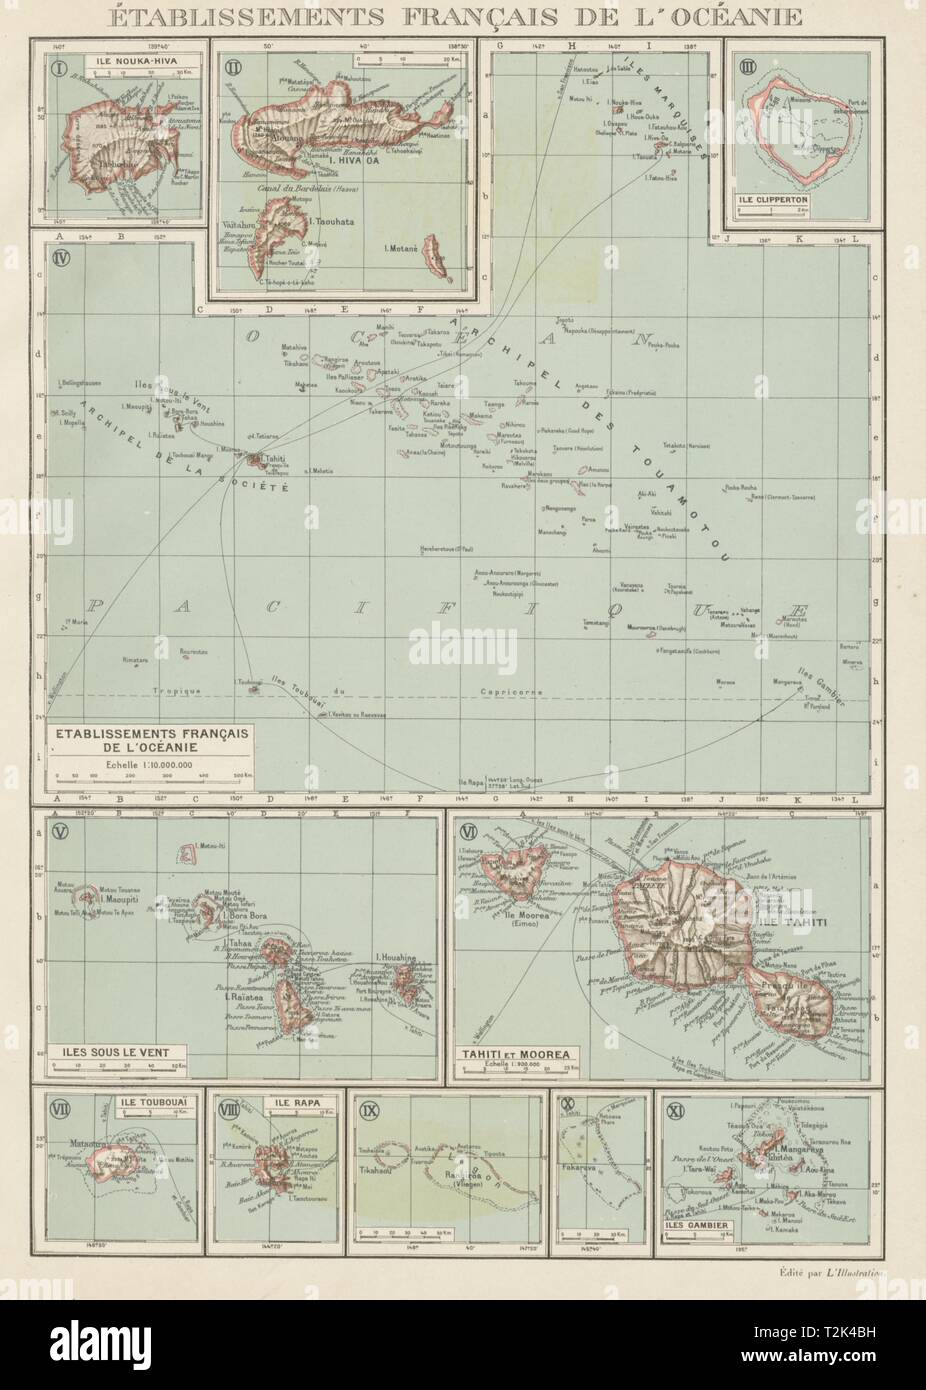 French Polynesia Map Stock Photos & French Polynesia Map ... on map of carribean, map of bahamas, map of bali, map of malaysia, map of seychelles, map of brazil, map of austrailia, map of spain, map of new zealand, map of thailand, map of moorea, map of costa rica, map of switzerland, map of fiji, map of pacific ocean, map of kwajalein, map of south pacific, map of french polynesia, map of bora bora, map of hawaii,